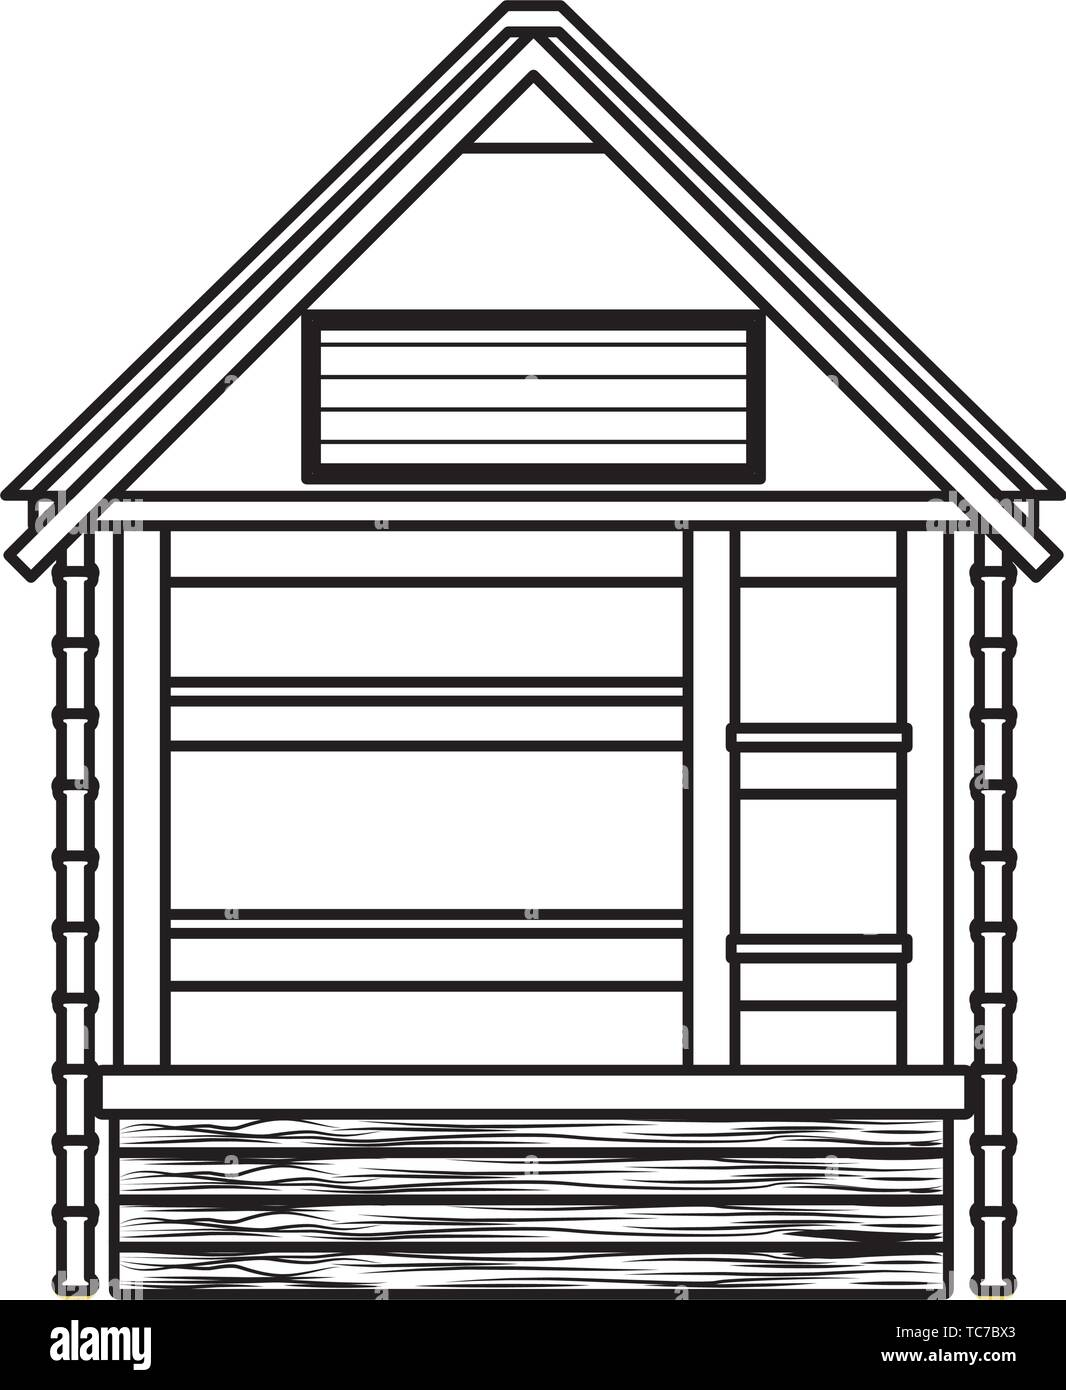 Beach wooden kiosk building house in black and white Stock Vector